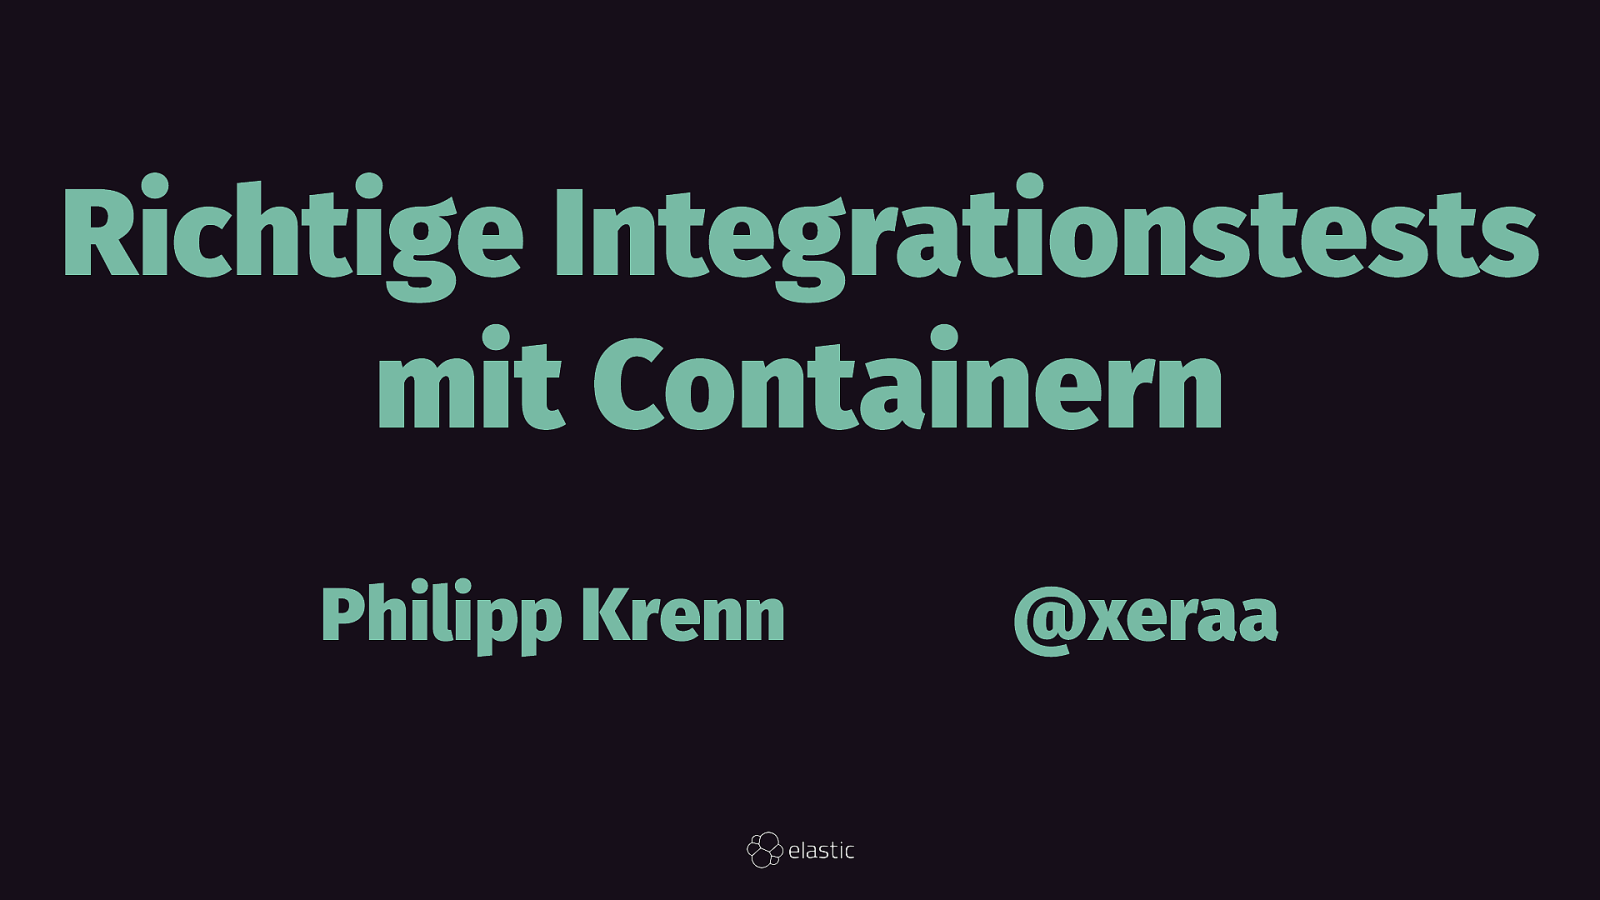 Richtige Integrationstests mit Containern